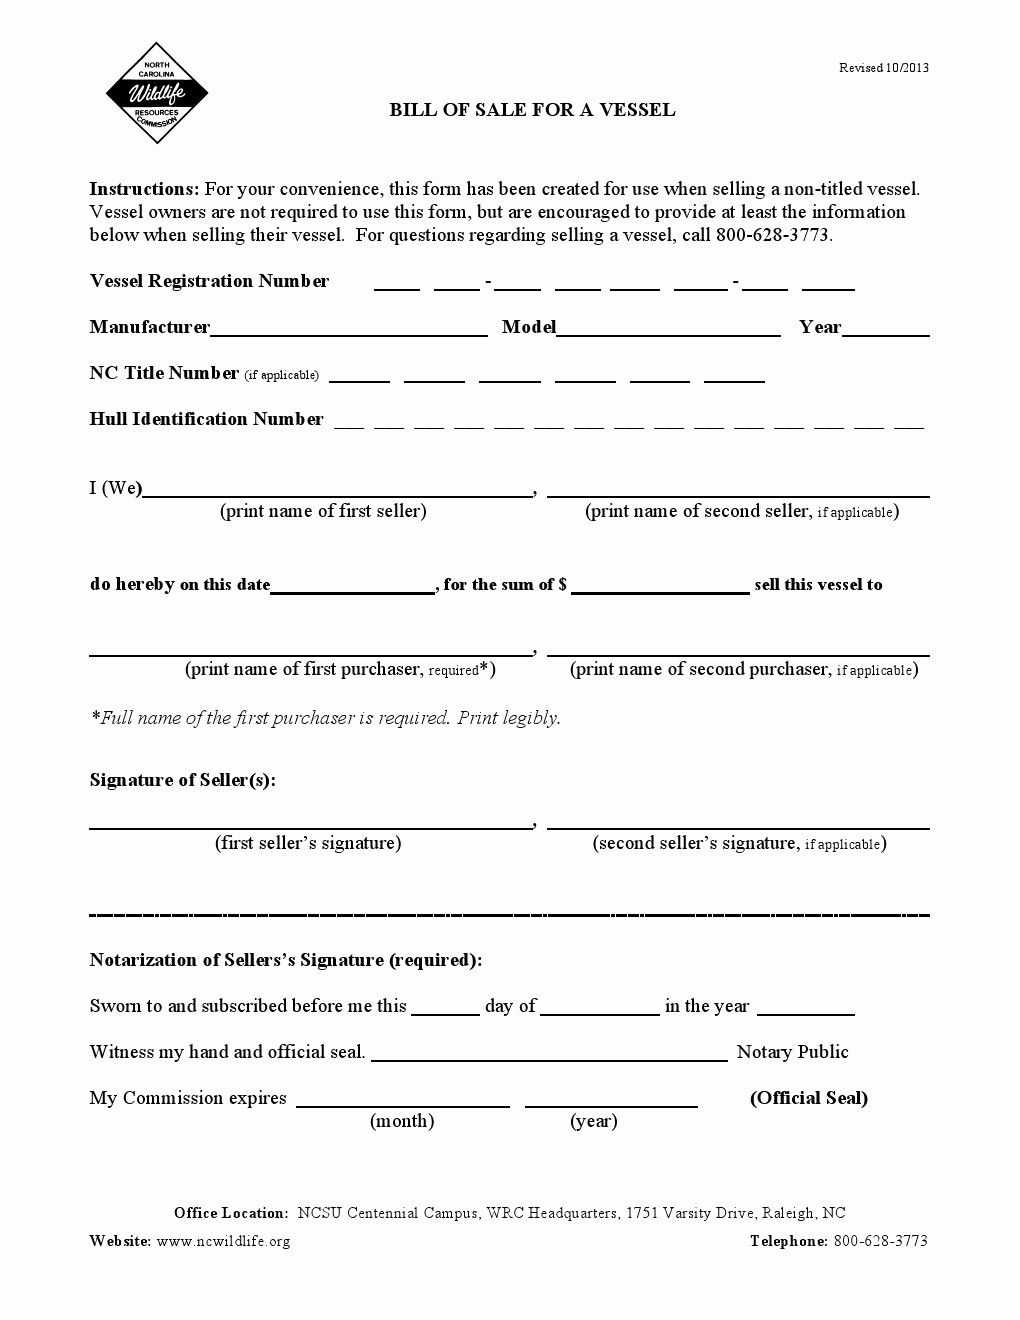 Bill Of Sale form Download Best Of Free north Carolina Vessel Bill Of Sale form Download